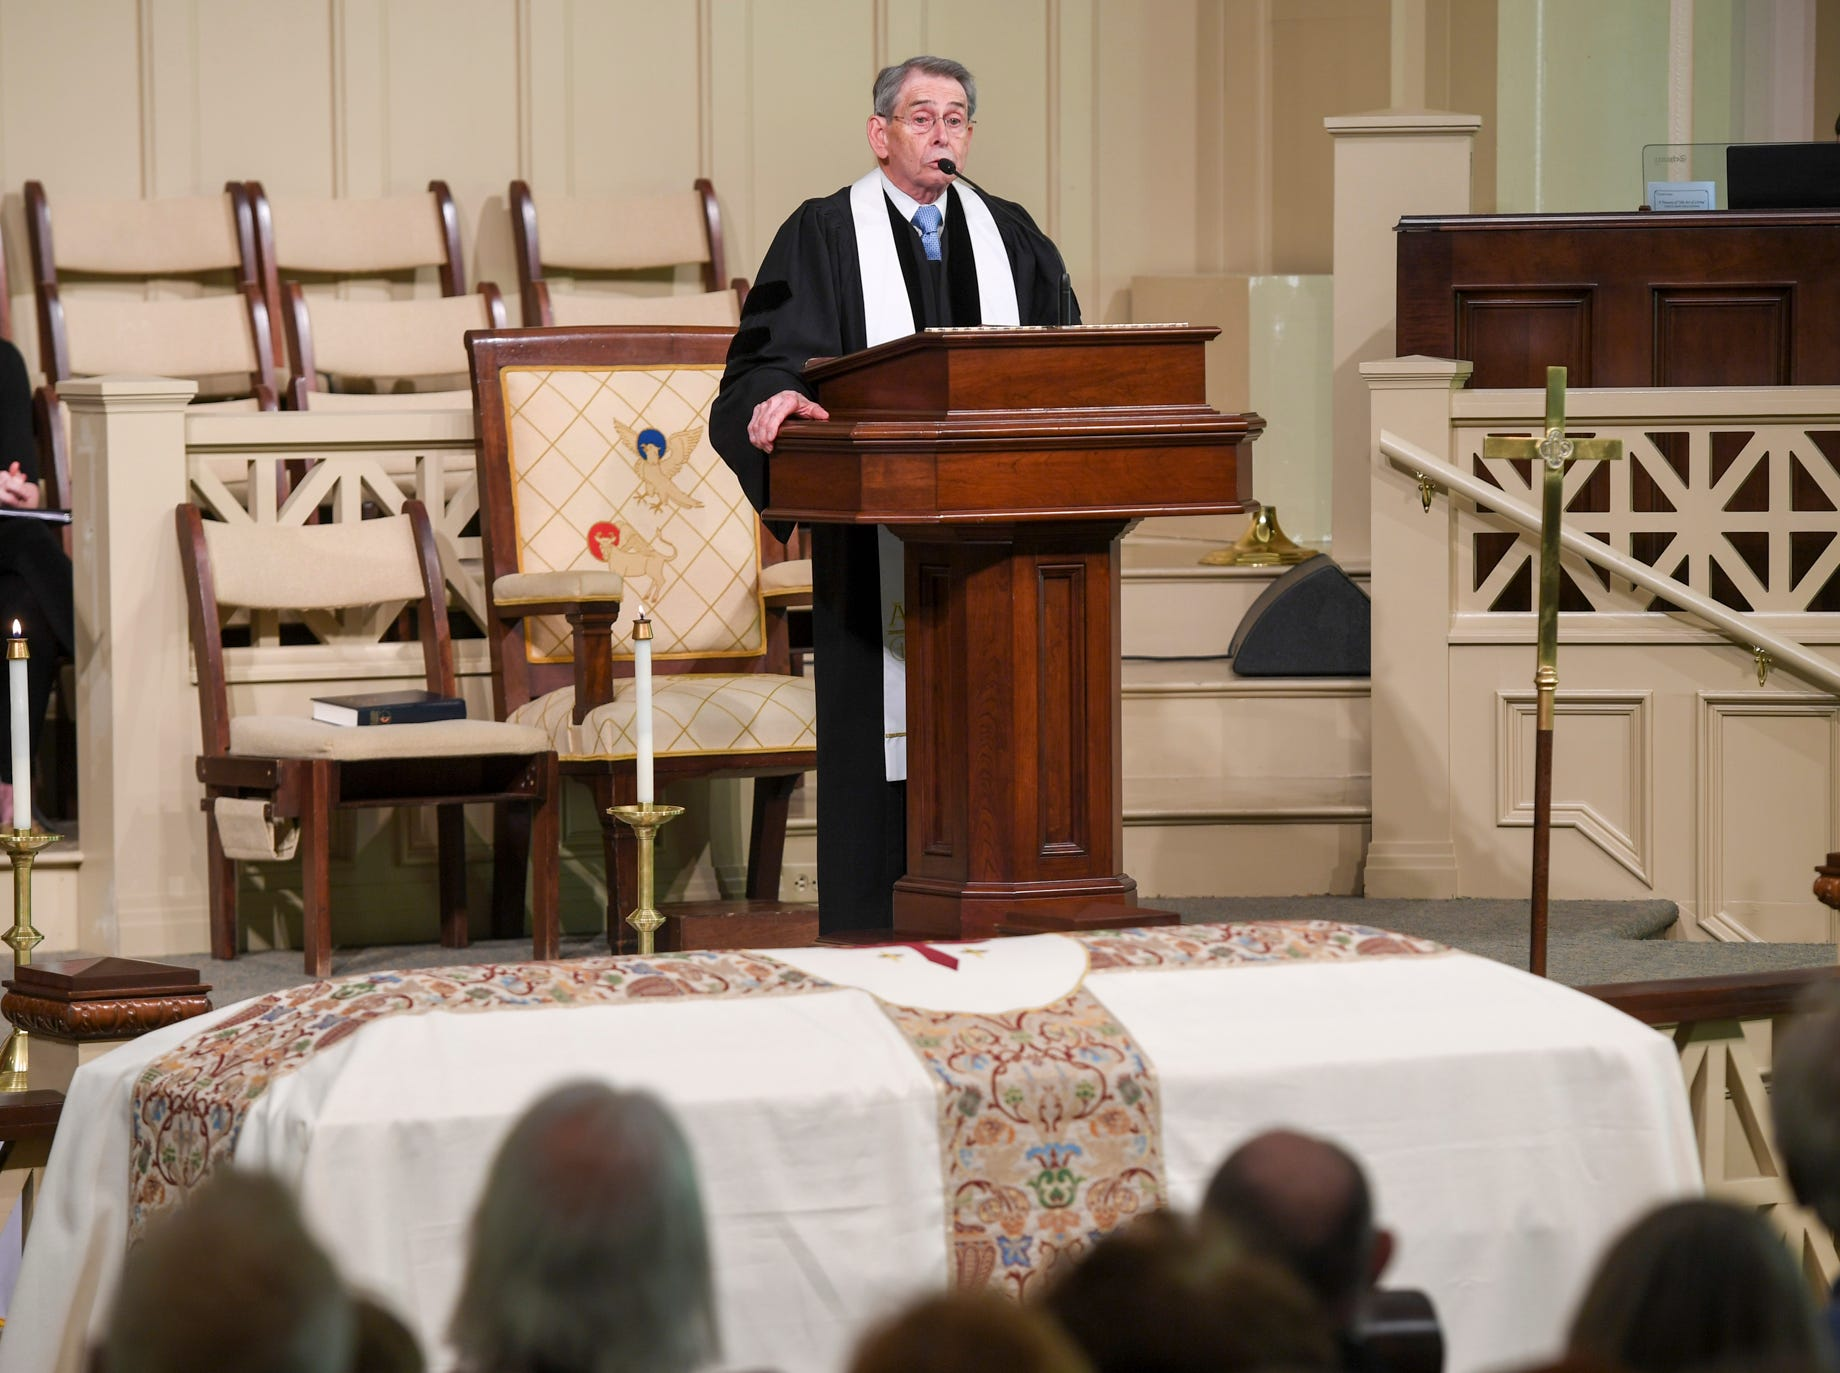 The Celebration of Life of Henry Harrision was held Friday, April 26, at First United Methodist Church.